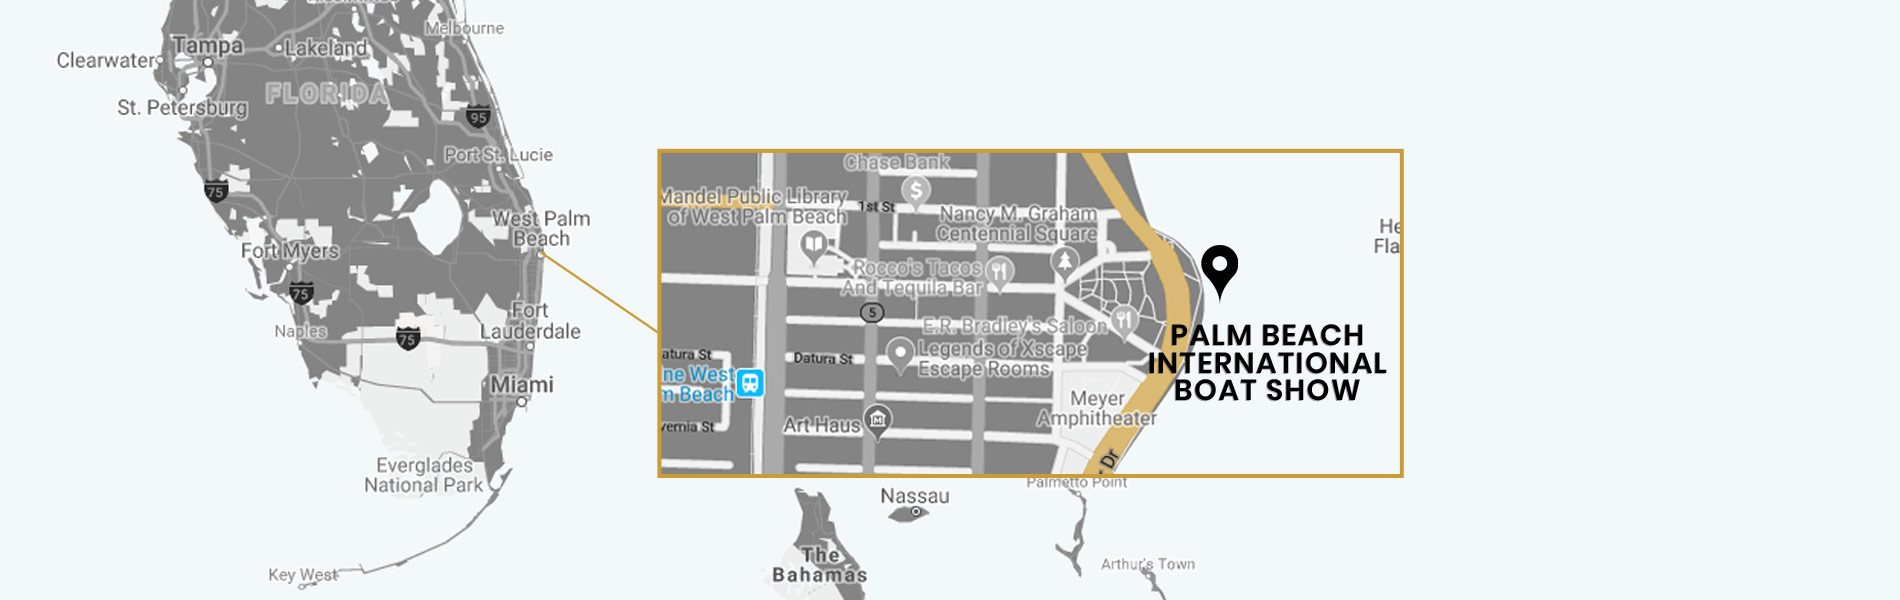 2019 palm beach international boat show map of yachts for sale with yachts for charter